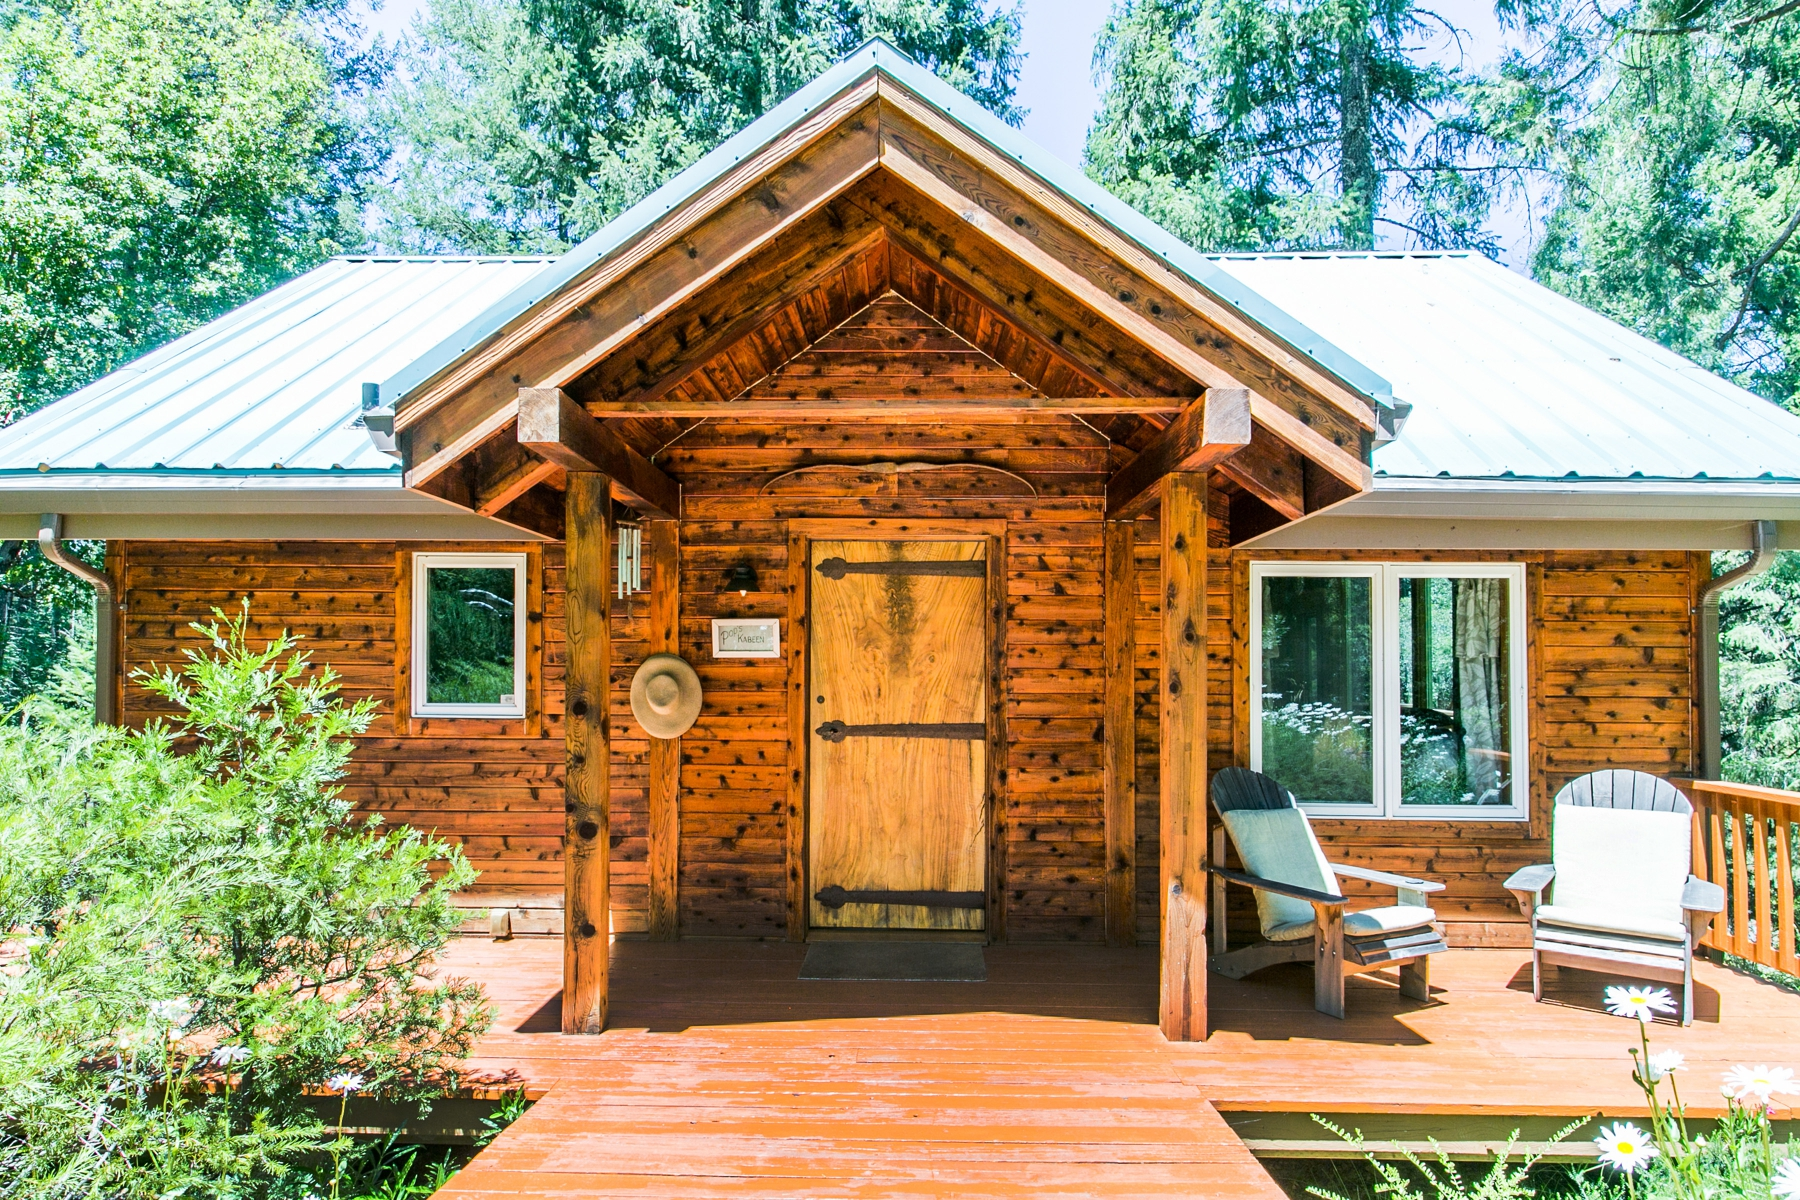 Single Family Home for Sale at 21049 New Rome Road, Nevada City, CA Nevada City, California 95959 United States